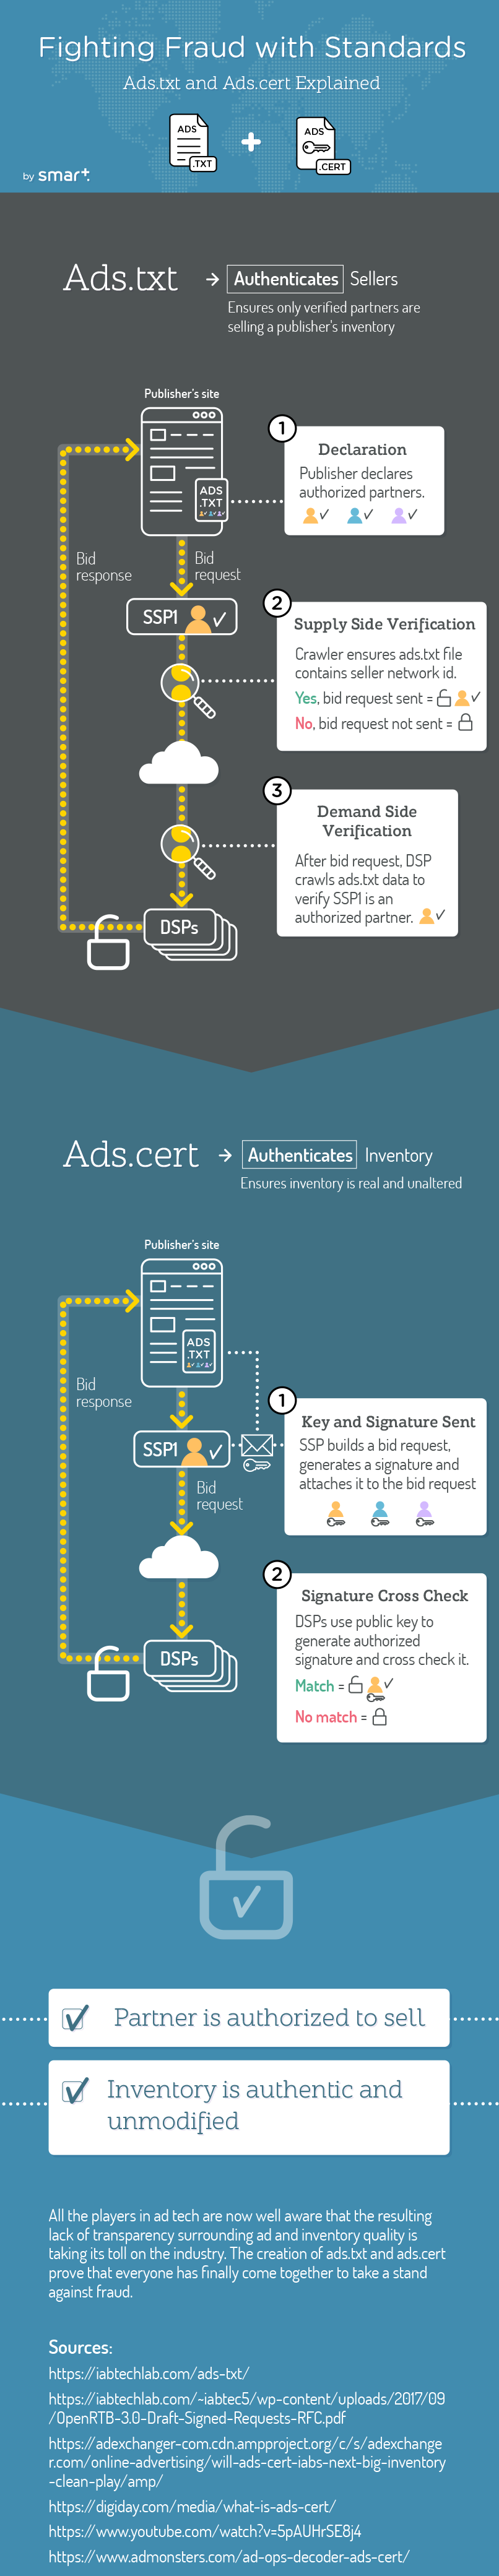 Fighting Fraud With Standards: Ads.txt and Ads.cert